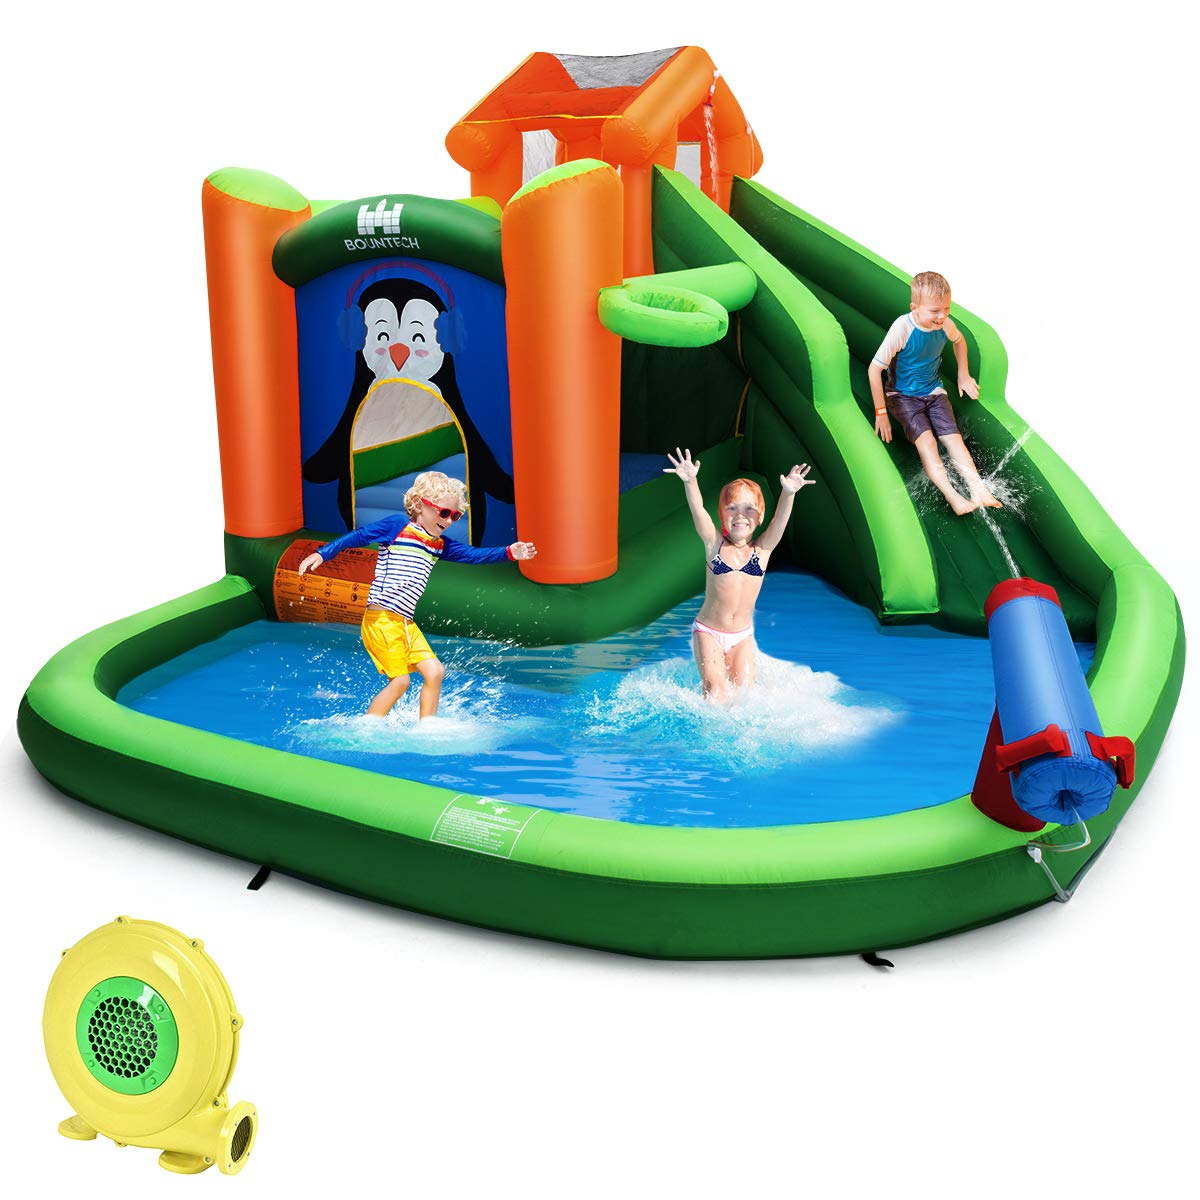 BOUNTECH Inflatable Water Slide, 6 in 1 Jumping Bounce House w/ Climbing Wall, Splash Pool, Water Cannon, Basketball Rim, Including Oxford Carry Bag, Repair Kit, Stakes, Hose (with 680W Air Blower) by BOUNTECH